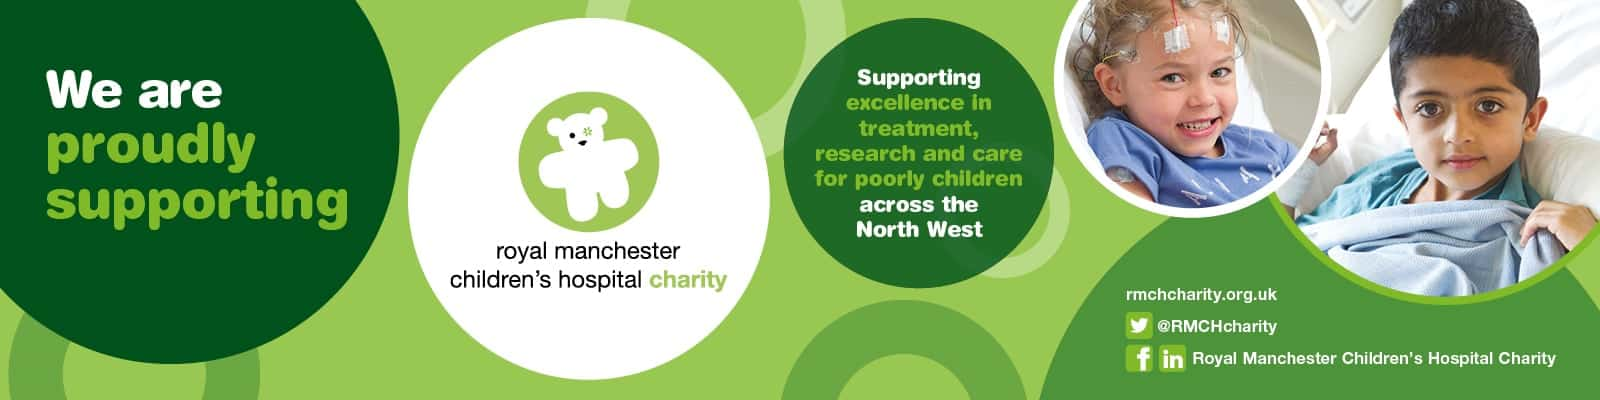 rmch-charity-banner